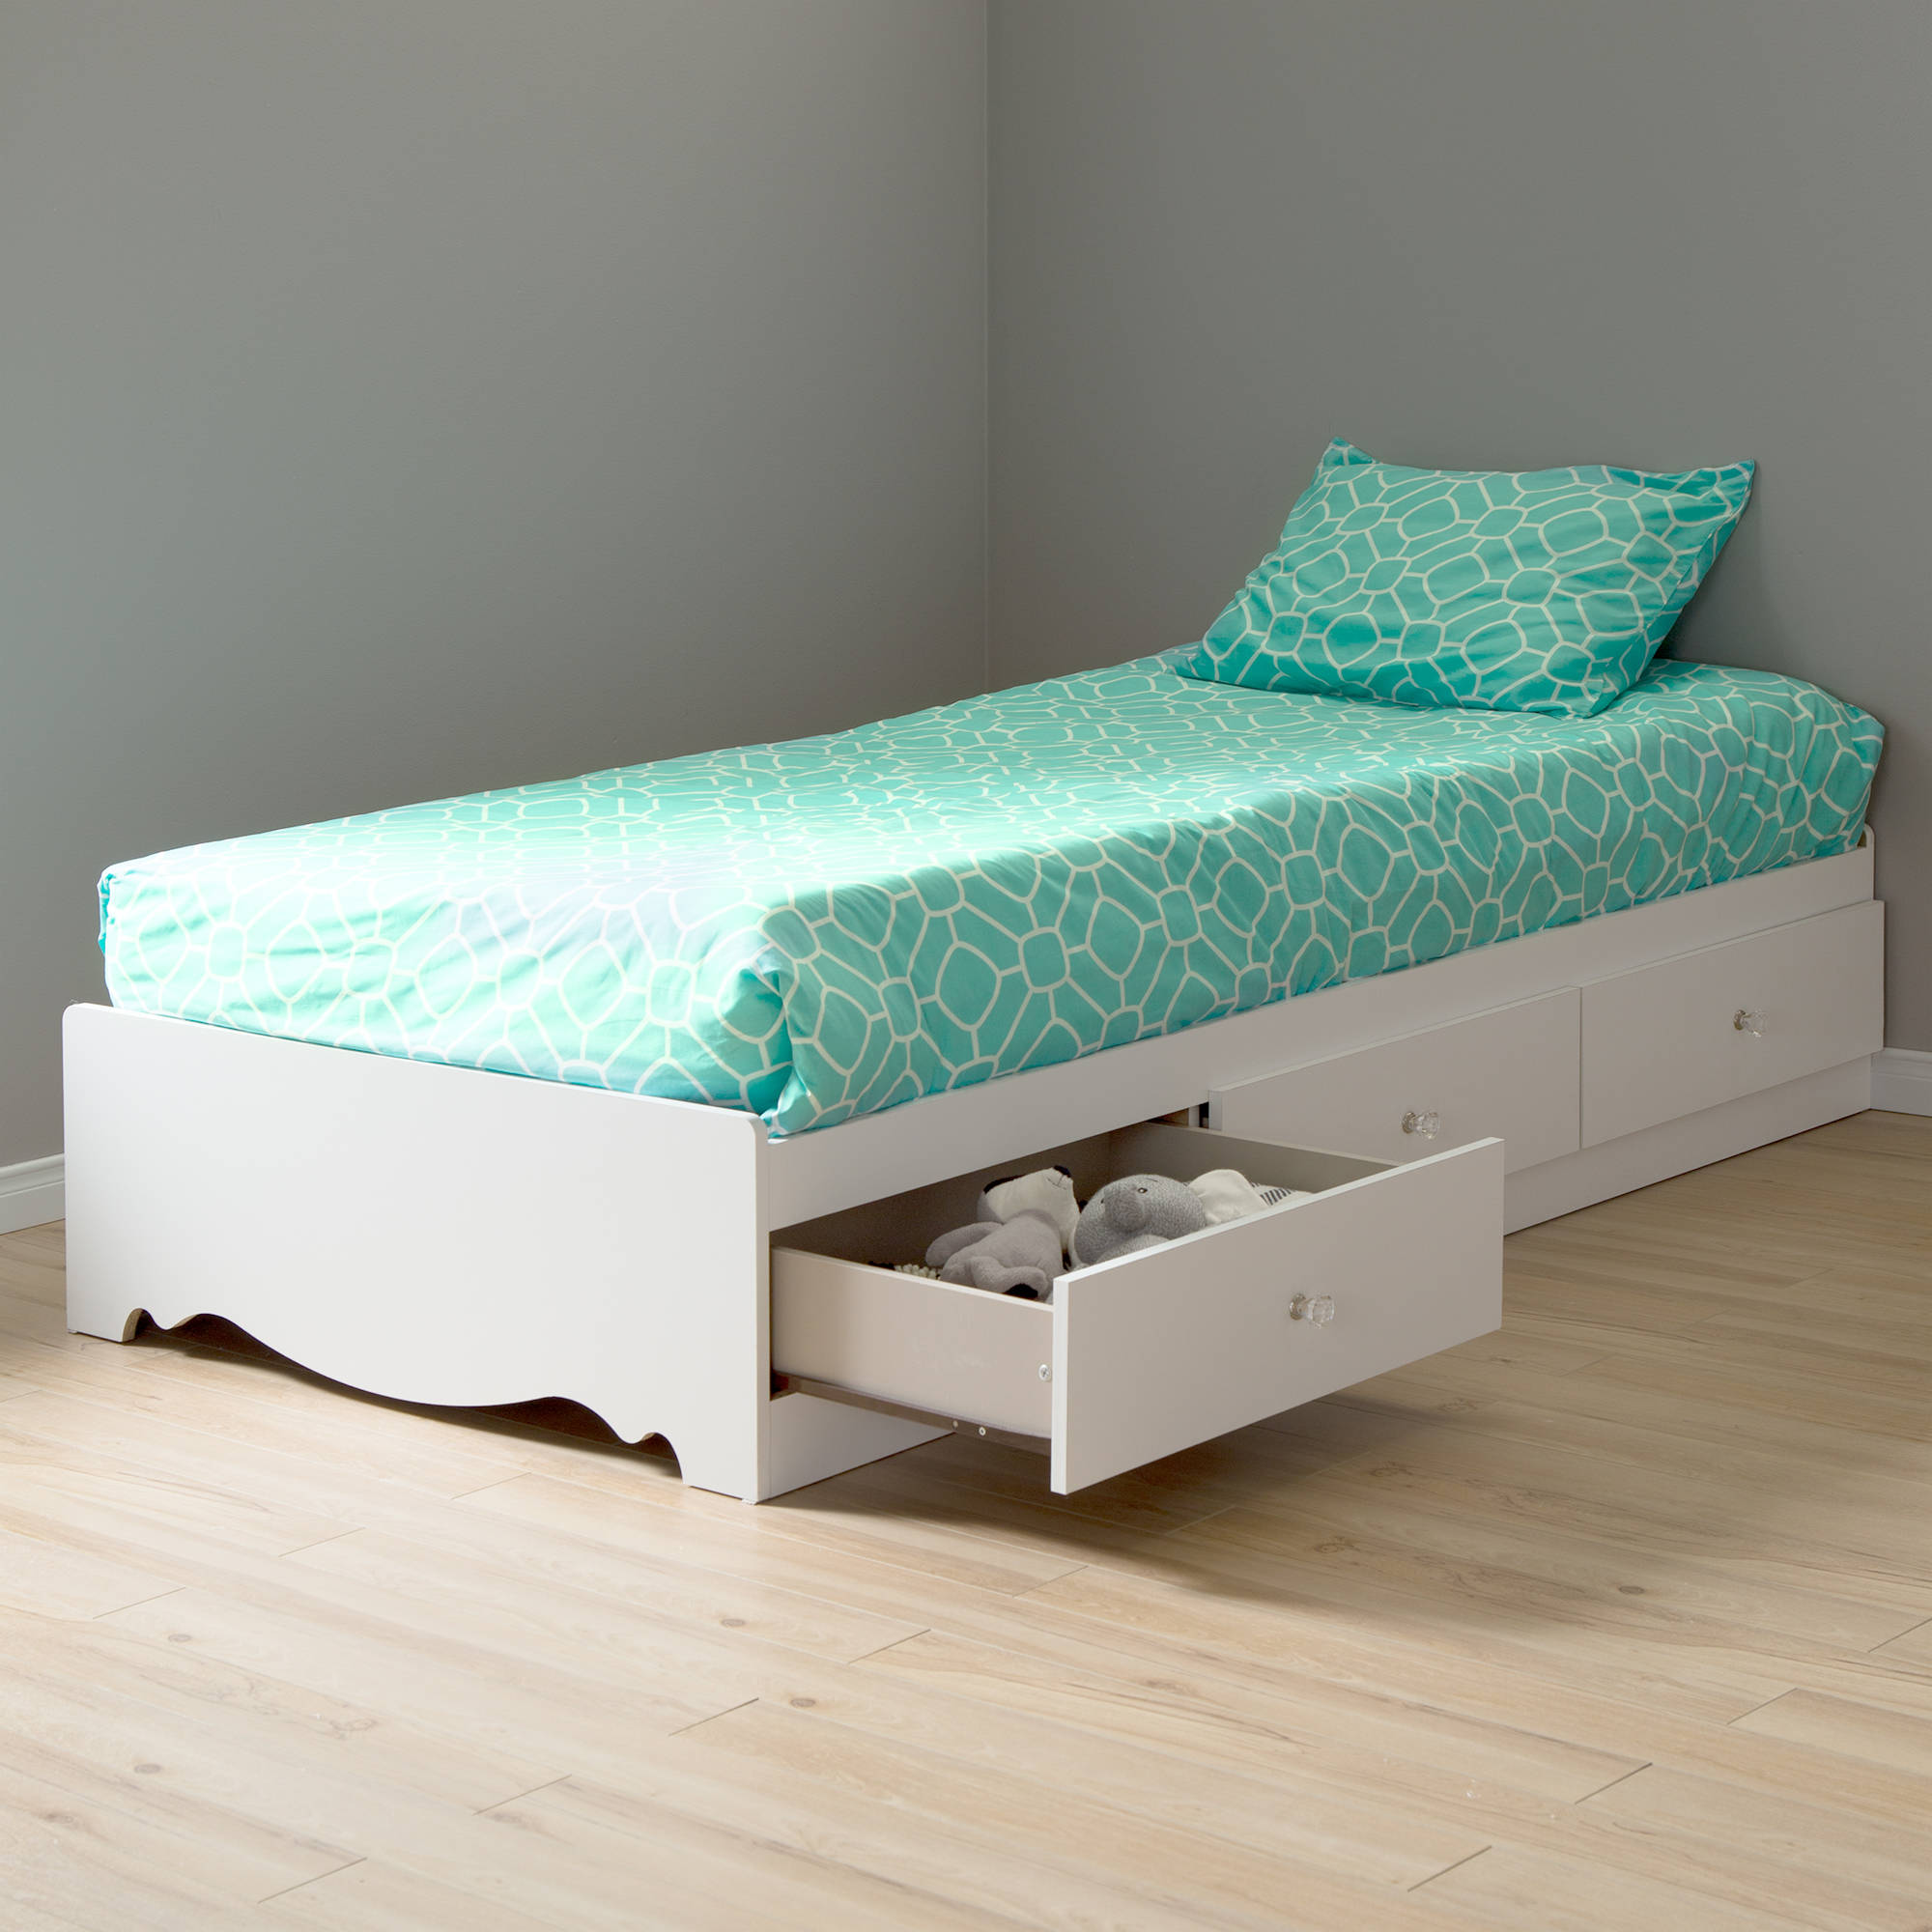 South Shore Crystal 3-Drawer Storage Bed, Twin, White